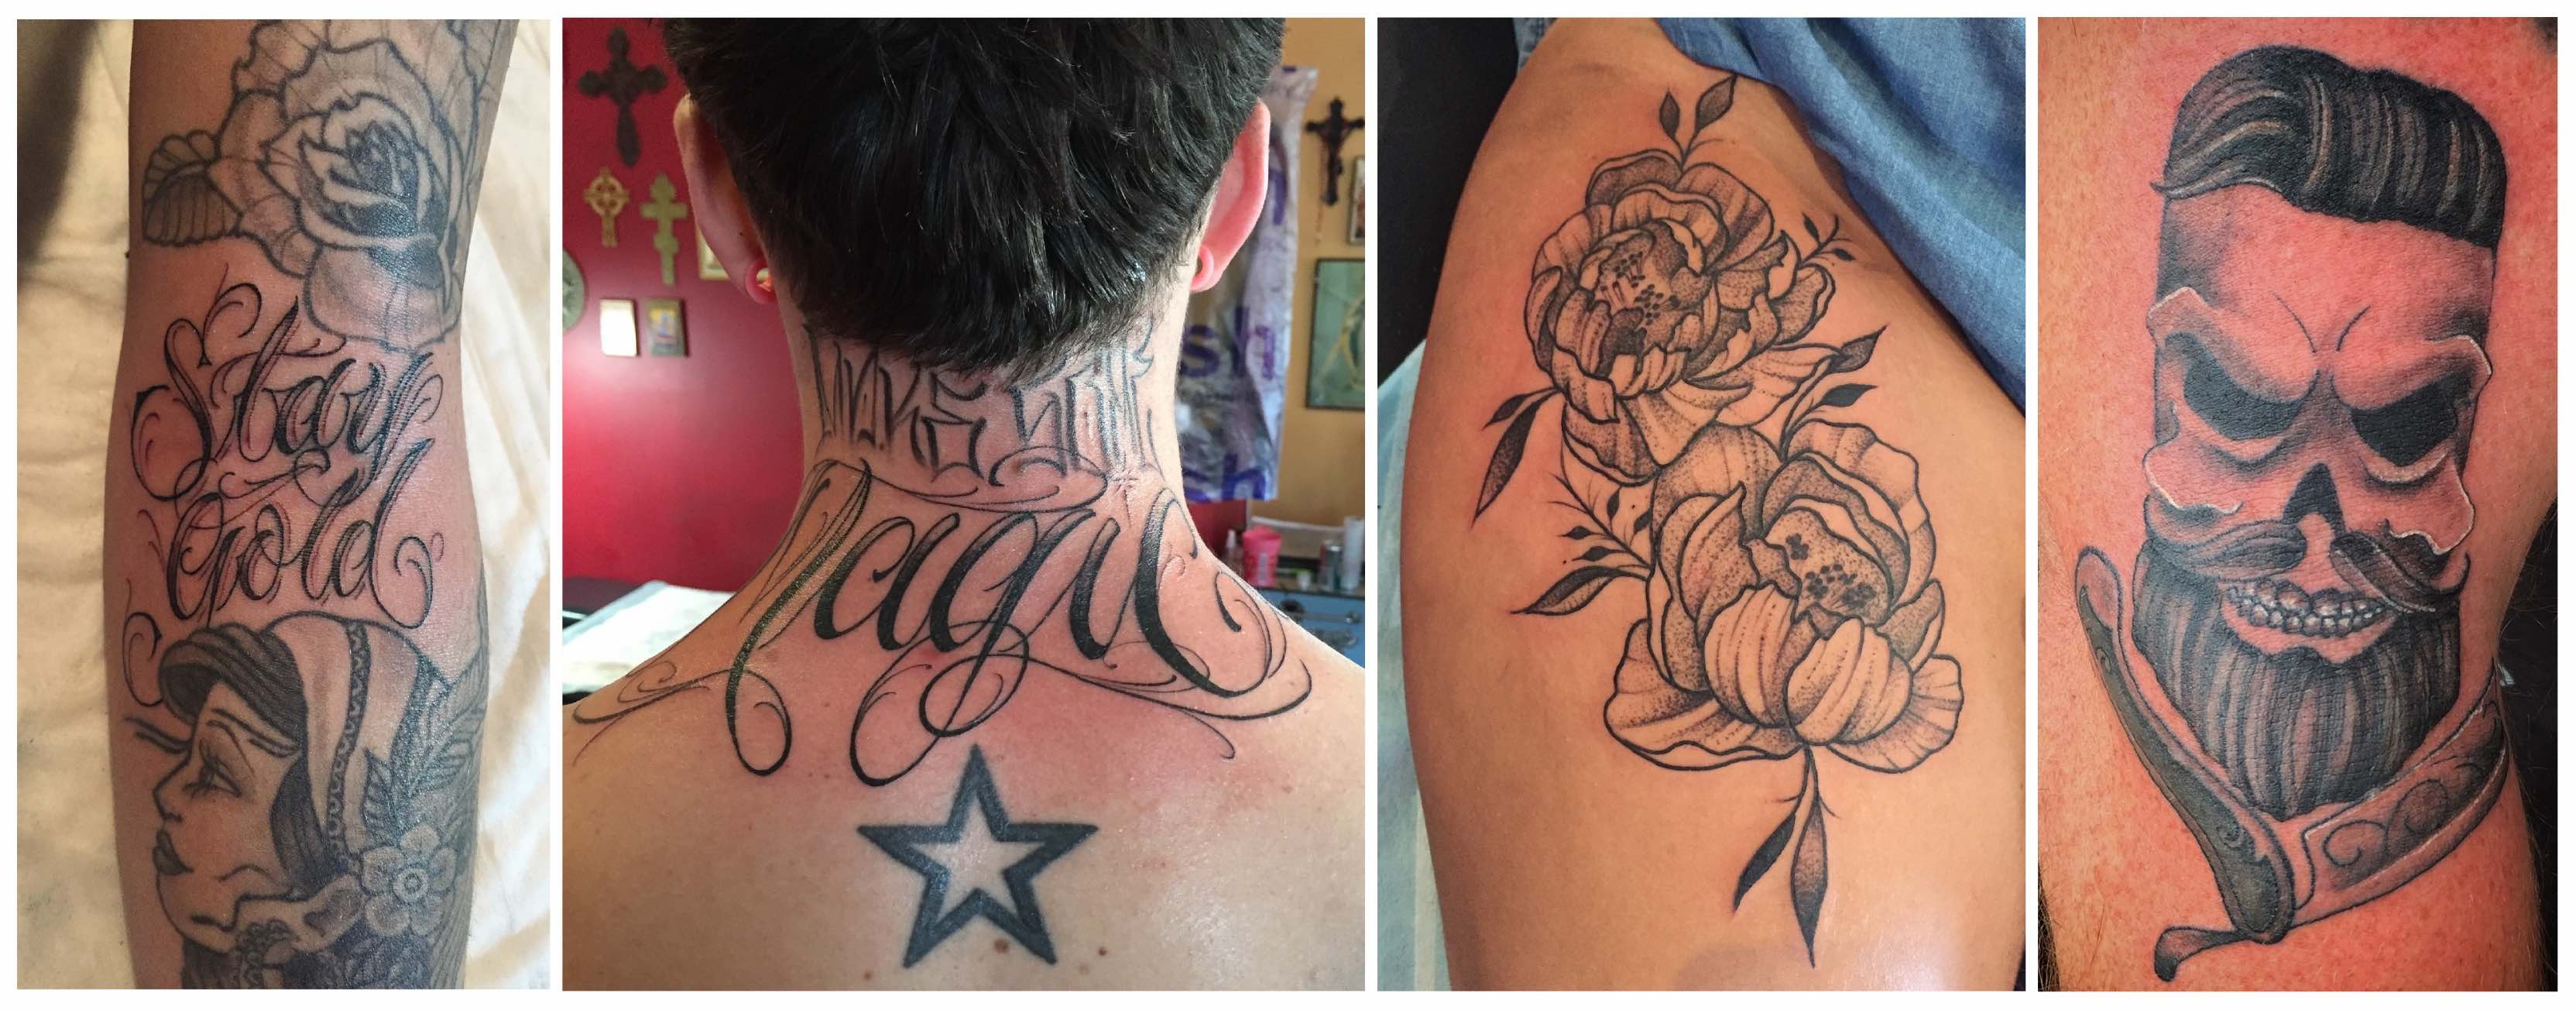 A selection of tattoos done by Duran Niemach